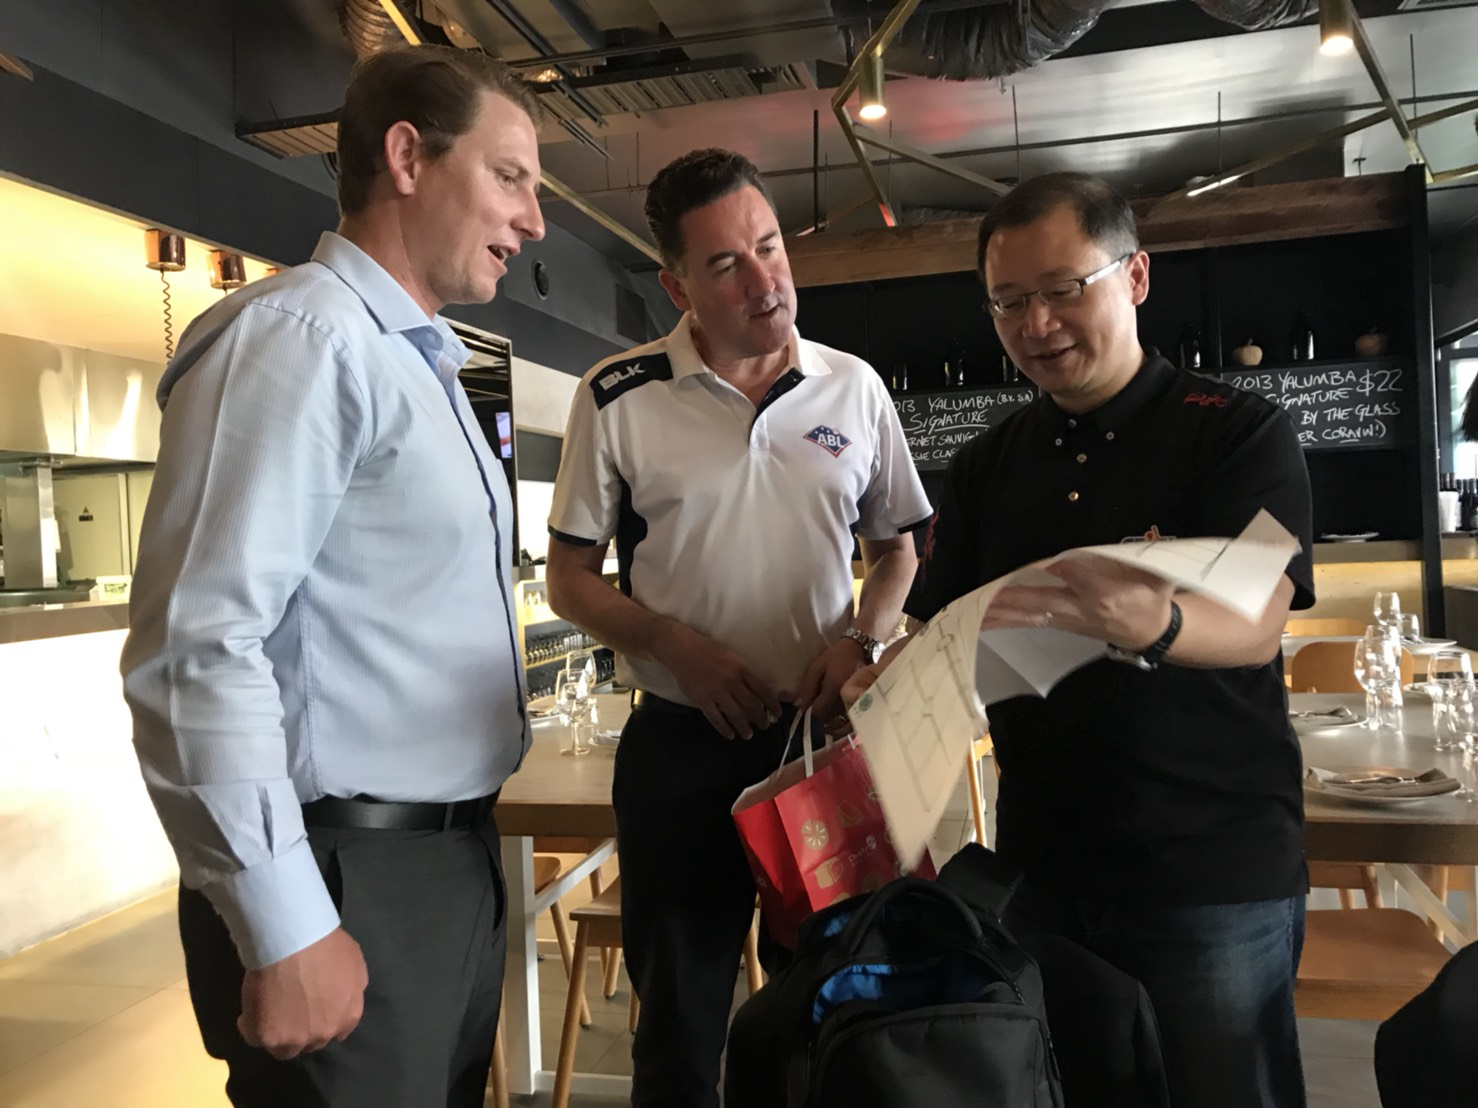 CPBL commissioner Wu Chih-Yang meeting with ABL CEO Cam Vale